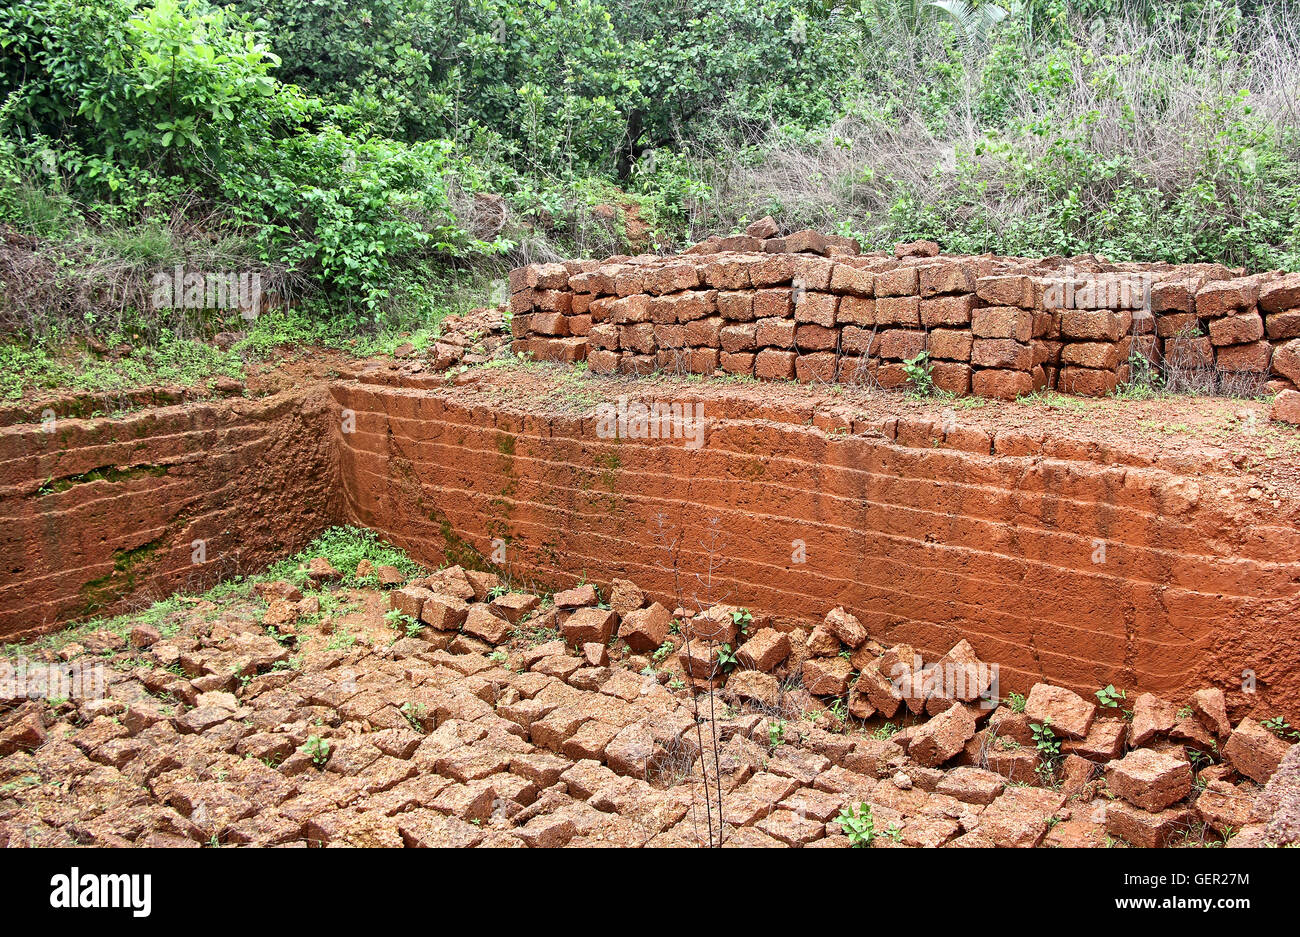 Stone Building Material : Quarry of laterite stone a soft rock widely used as